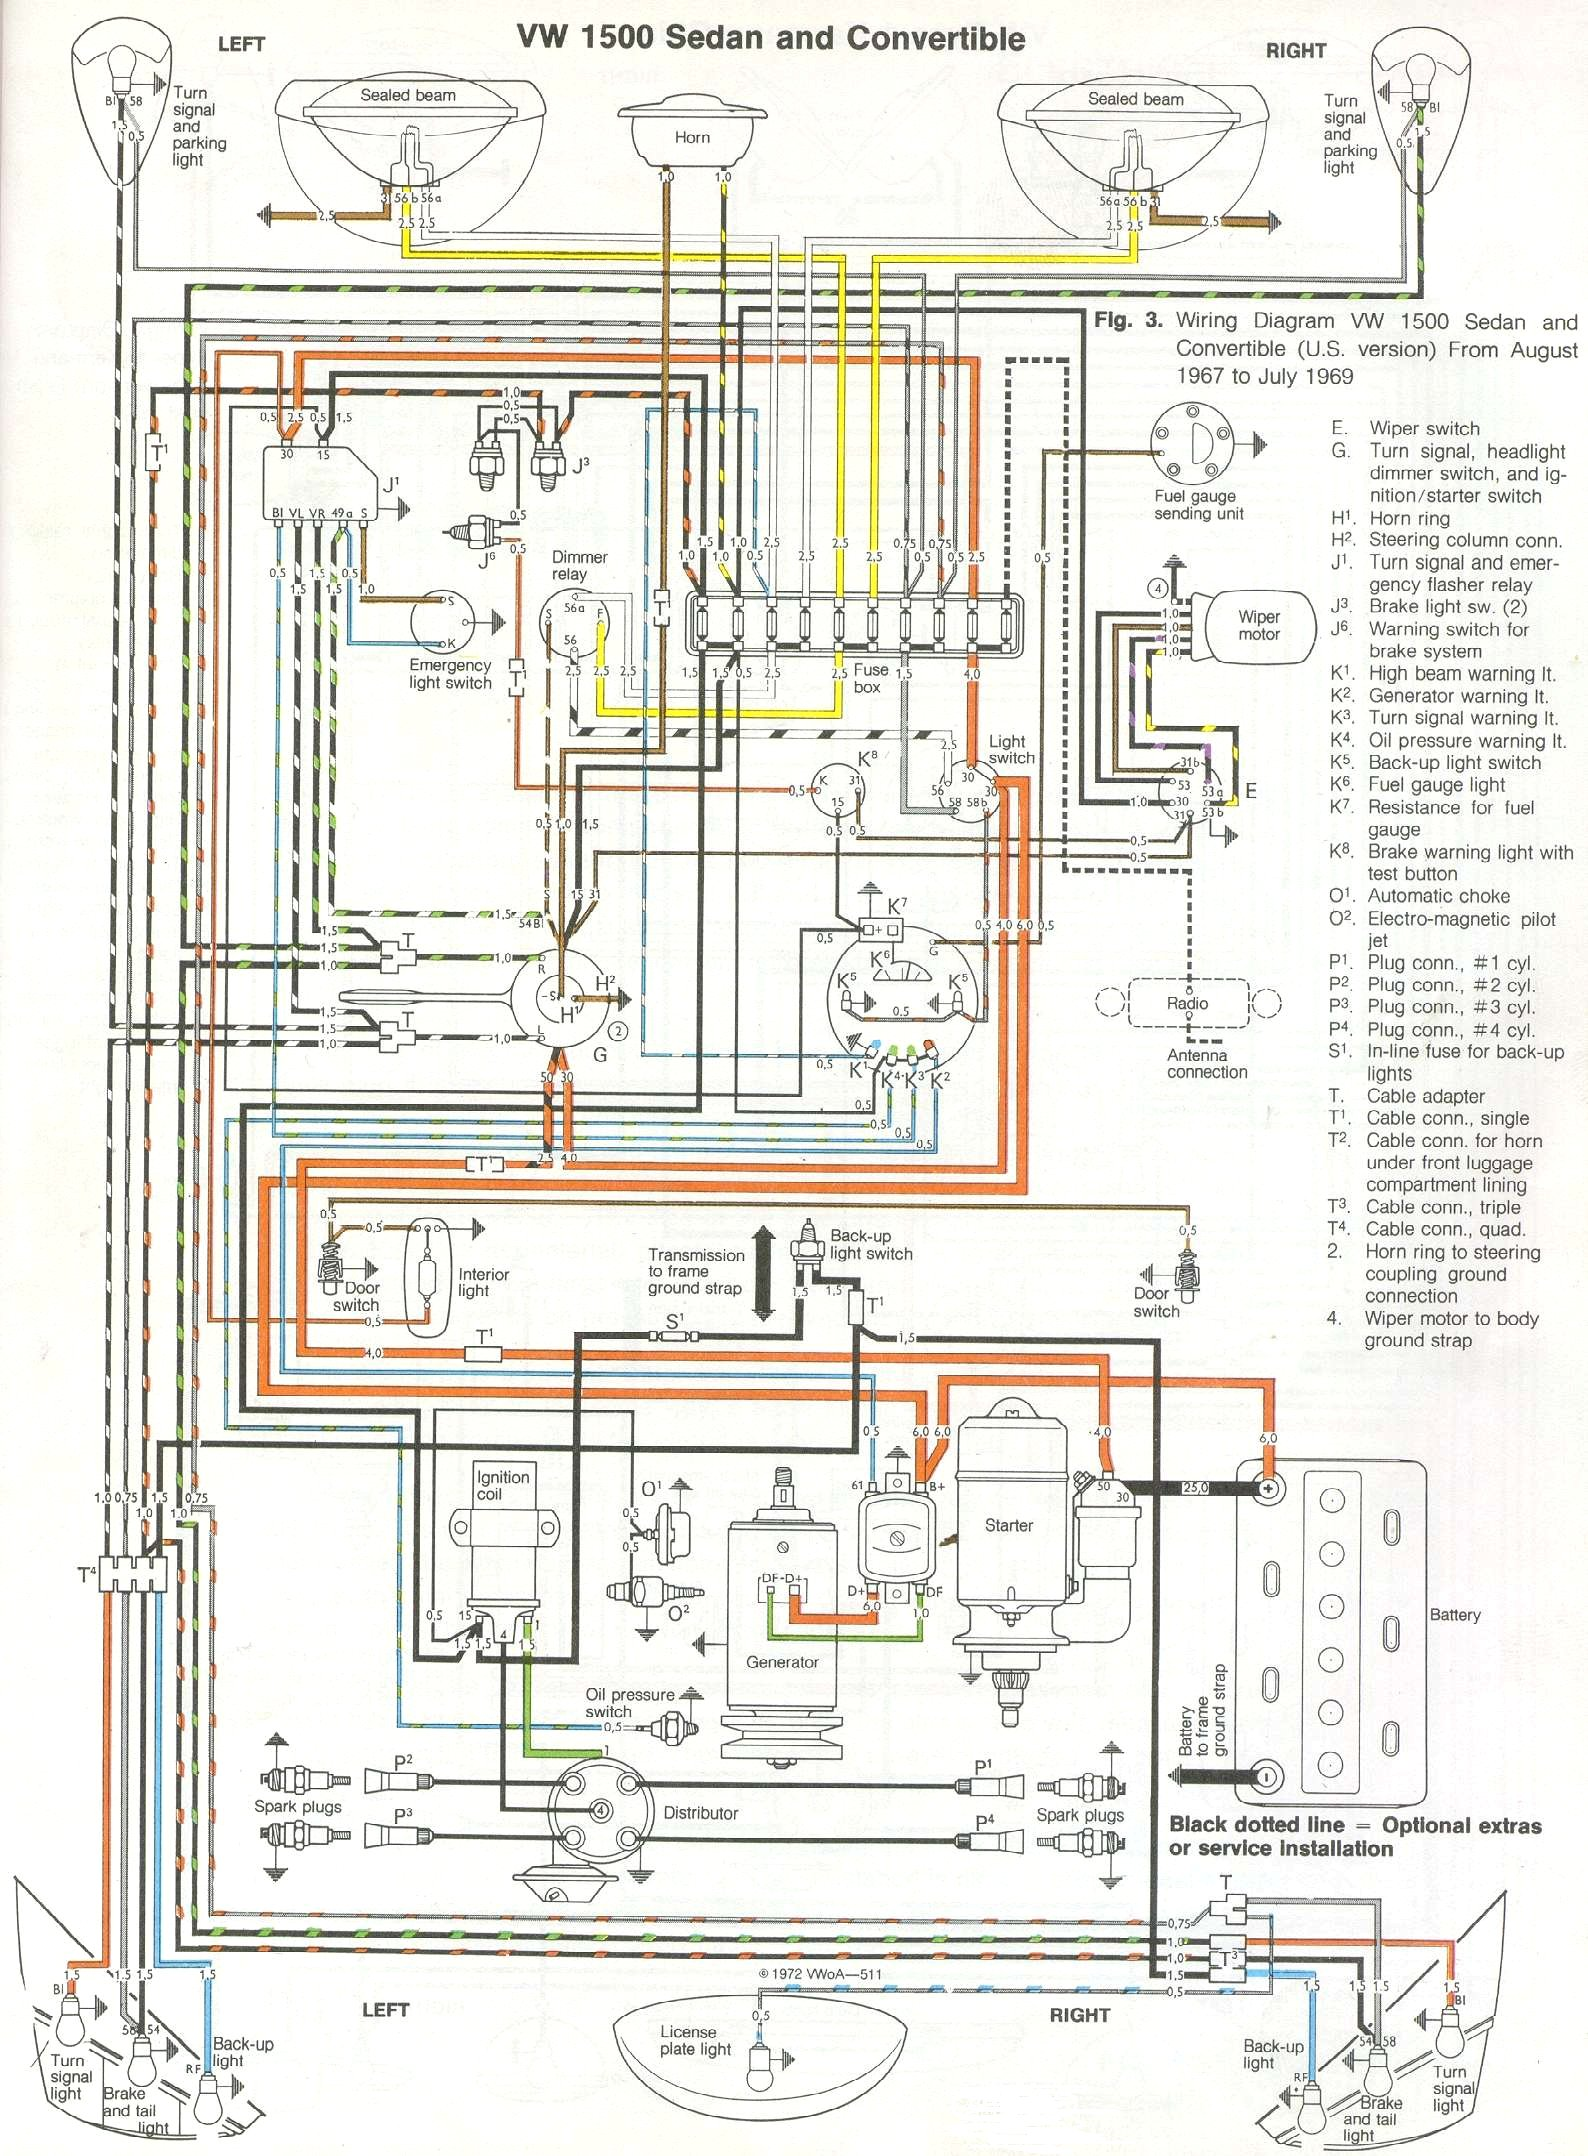 bug_6869 1969 71 beetle wiring diagram thegoldenbug com 1970 vw bug wiring diagram at crackthecode.co